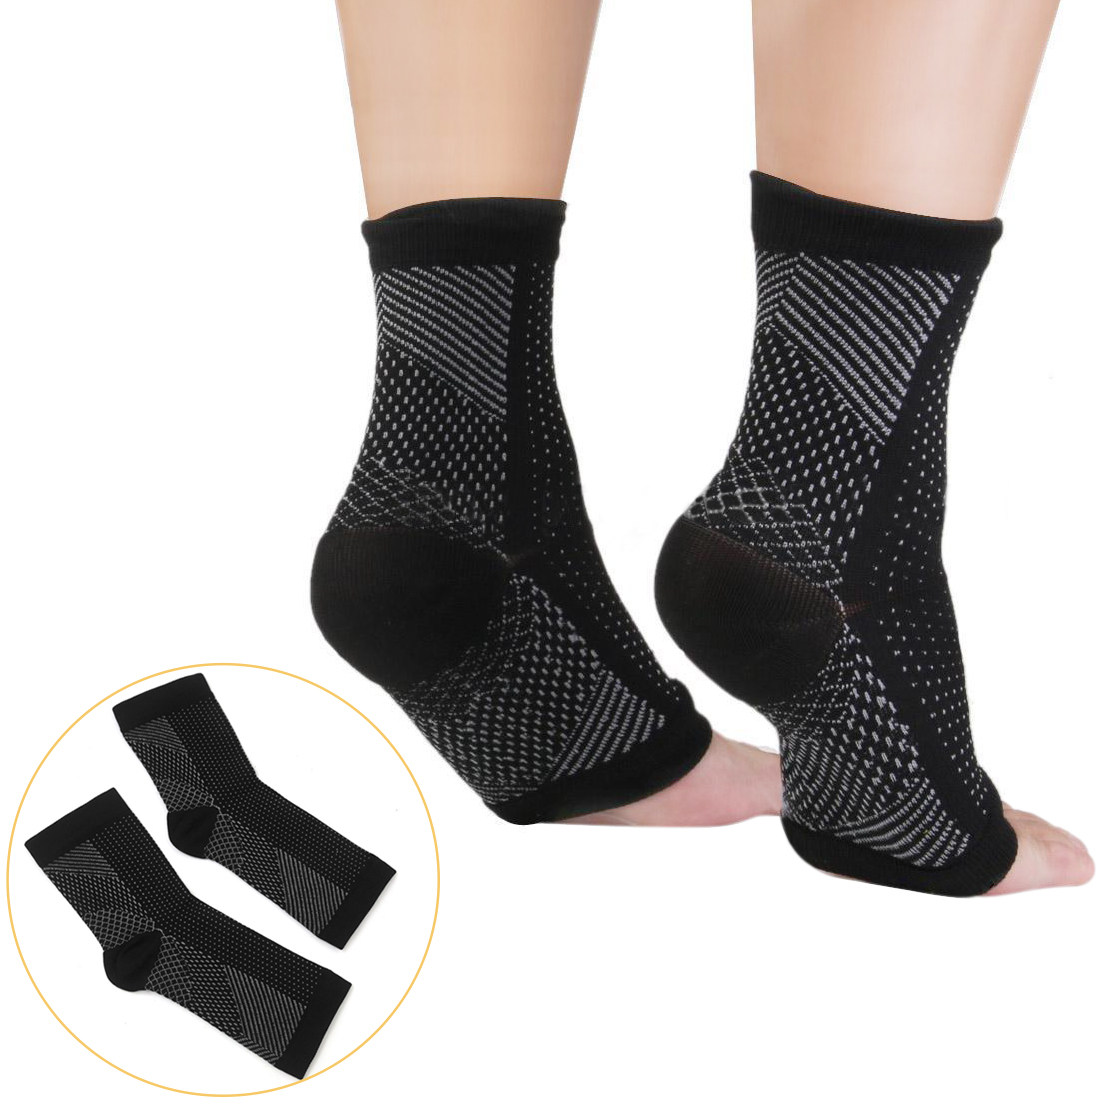 L/XL Pairs Plantar Fasciitis Foot Pain Support Arch Heel Ankle Compression Socks Sleeve